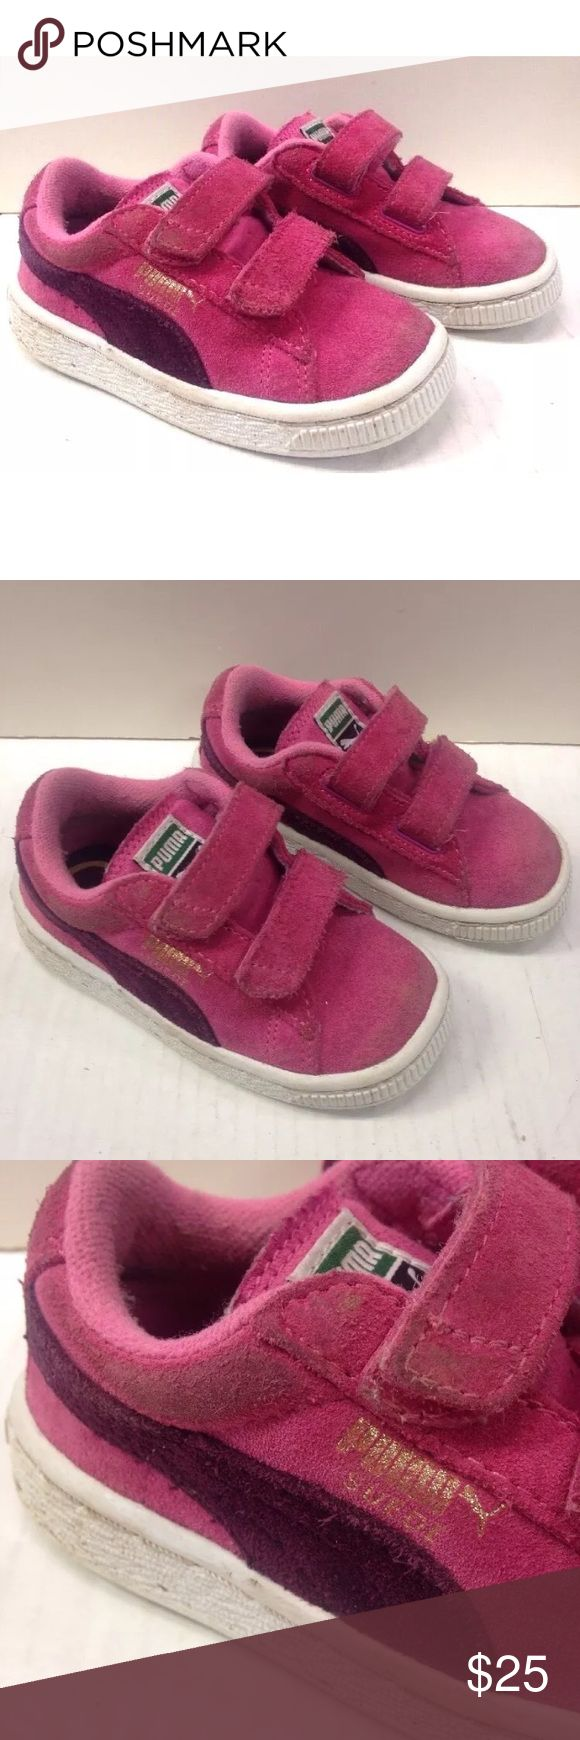 PUMA PINK SUEDE VELCRO SHOES sneakers TODDLER GIRL CUTE PAIR OF PUMA SUEDE VELCRO SNEAKERS  TODDLER GIRL SIZE 7 US PINK & PURPLE COLORS REALLY NICE CONDITION, SHOWS LITTLE WEAR See pictures for details Puma Shoes Sneakers